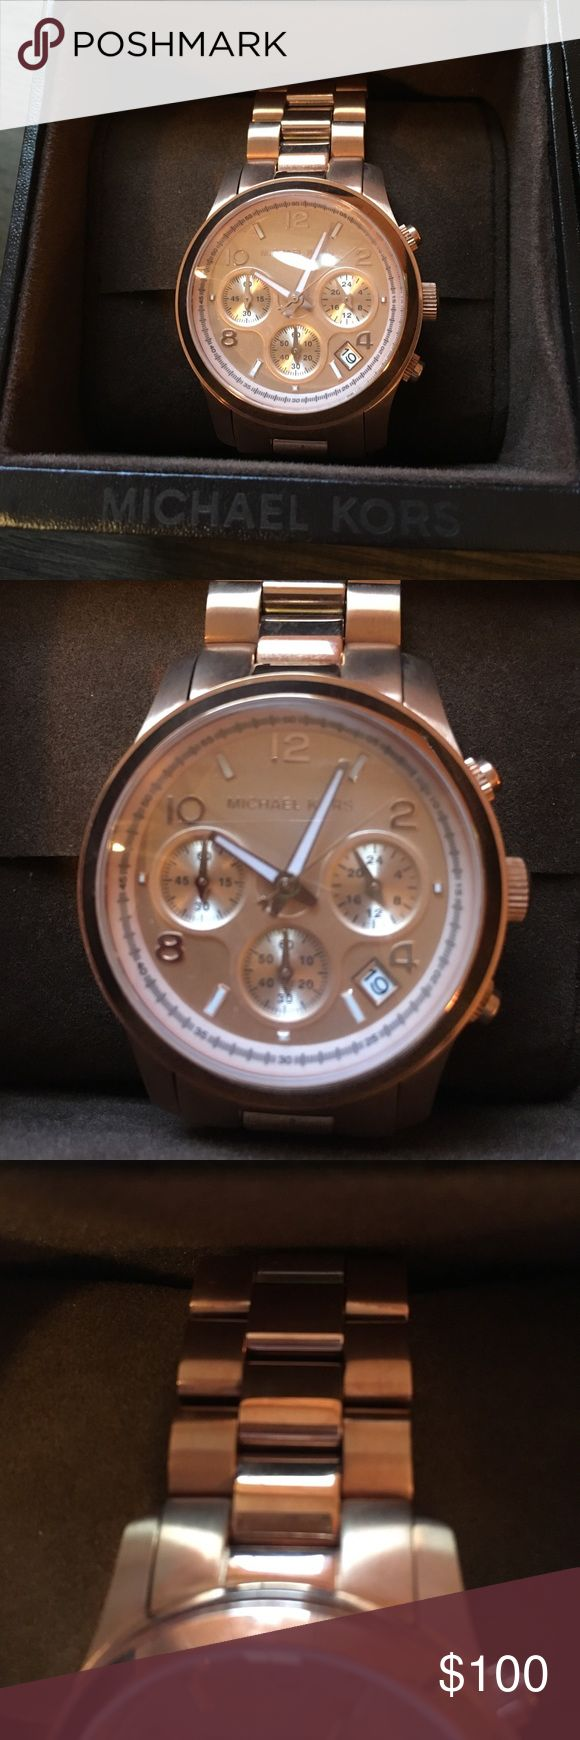 Brand new Michael Kors watch Brand new Michael Kors watch. I received it as a Christmas present, but I prefer silver. I do not have the receipt. Michael Kors Accessories Watches